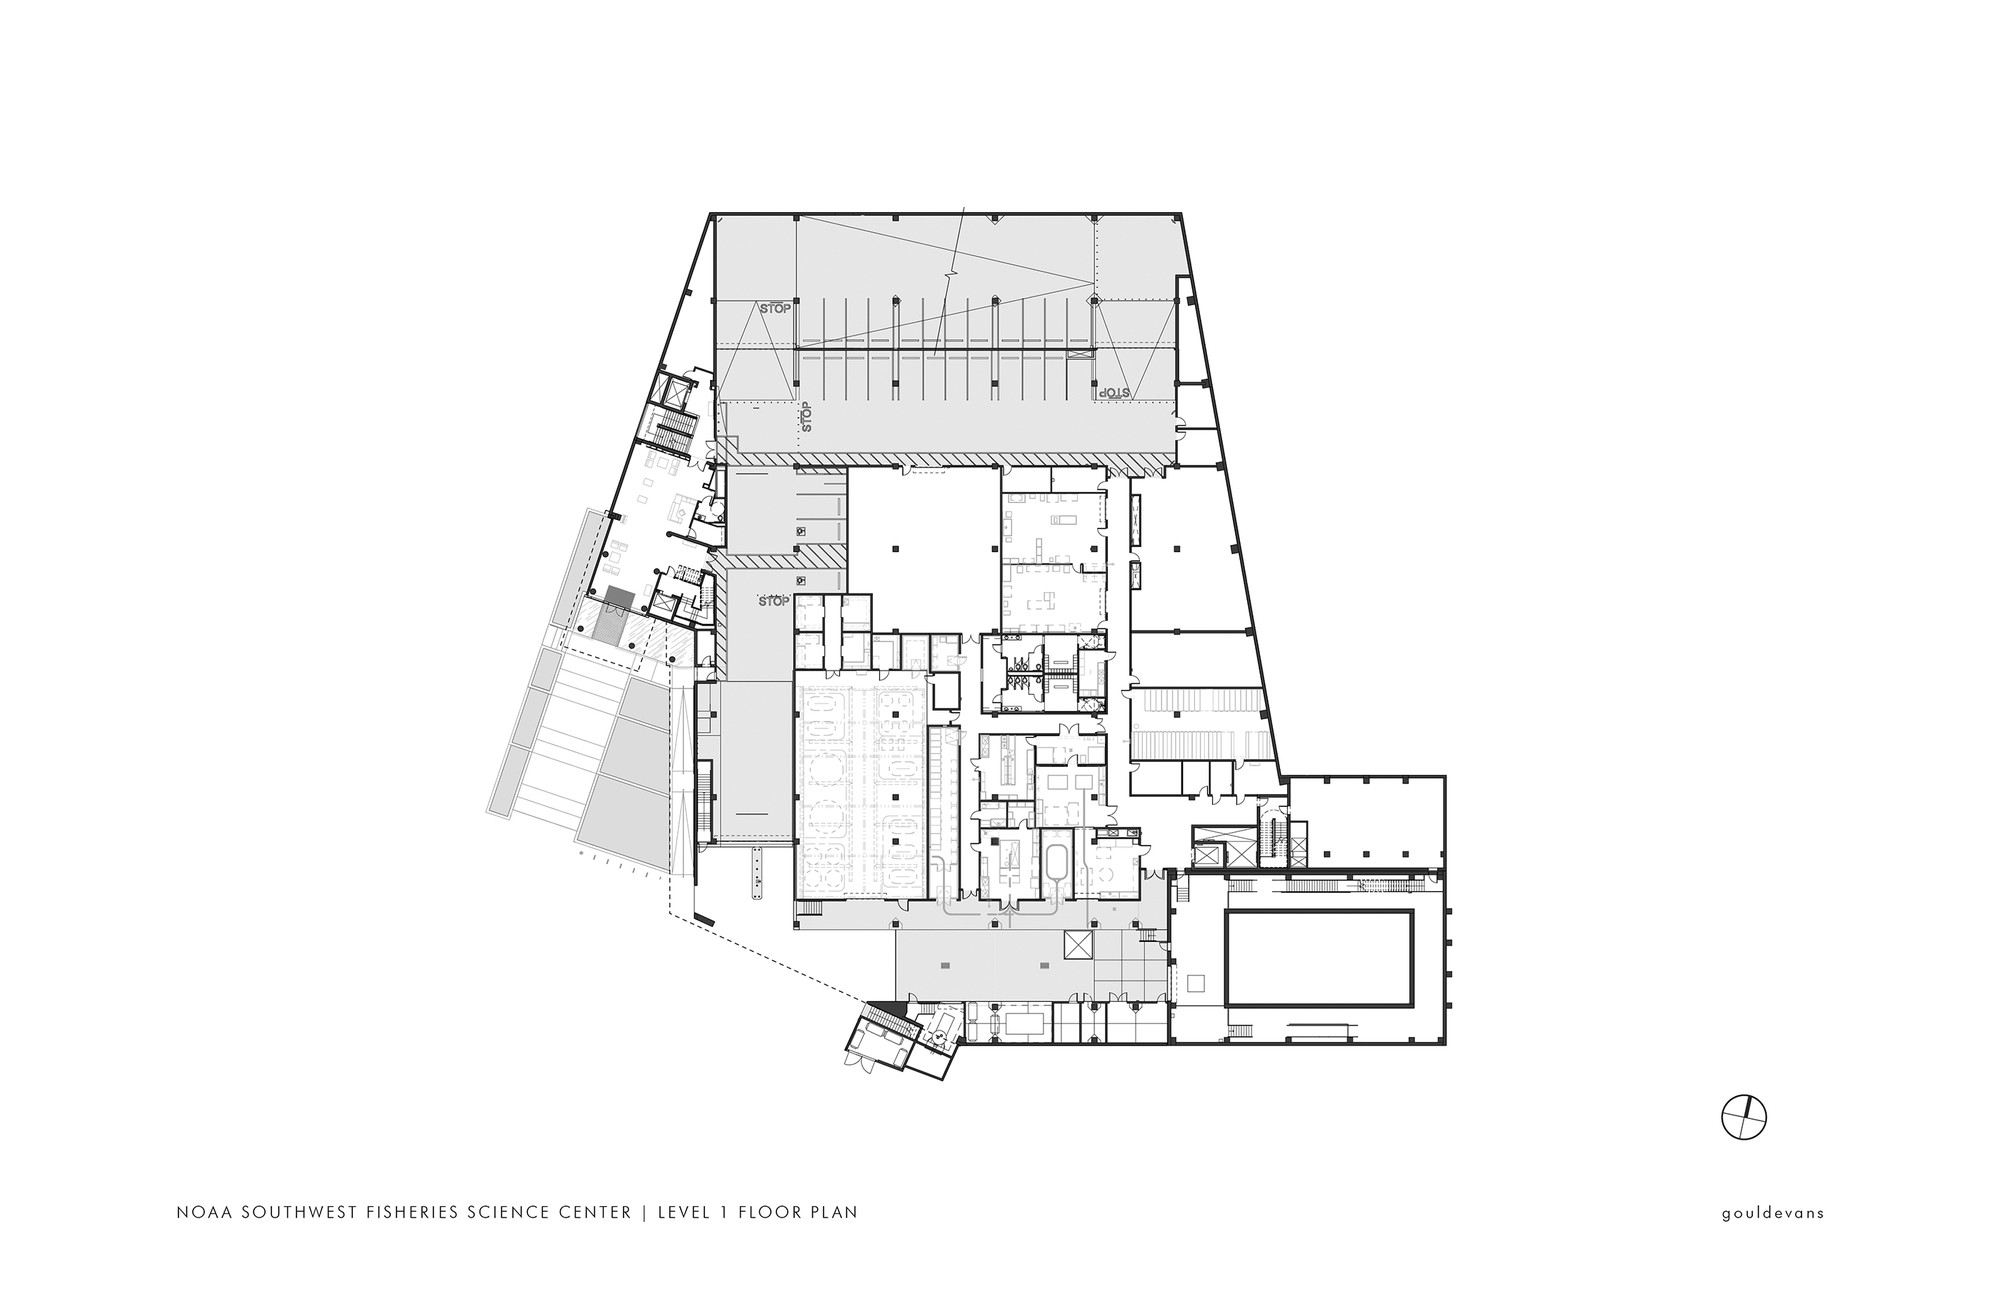 gallery of noaa southwest fisheries science center gould evans 15 floor plan